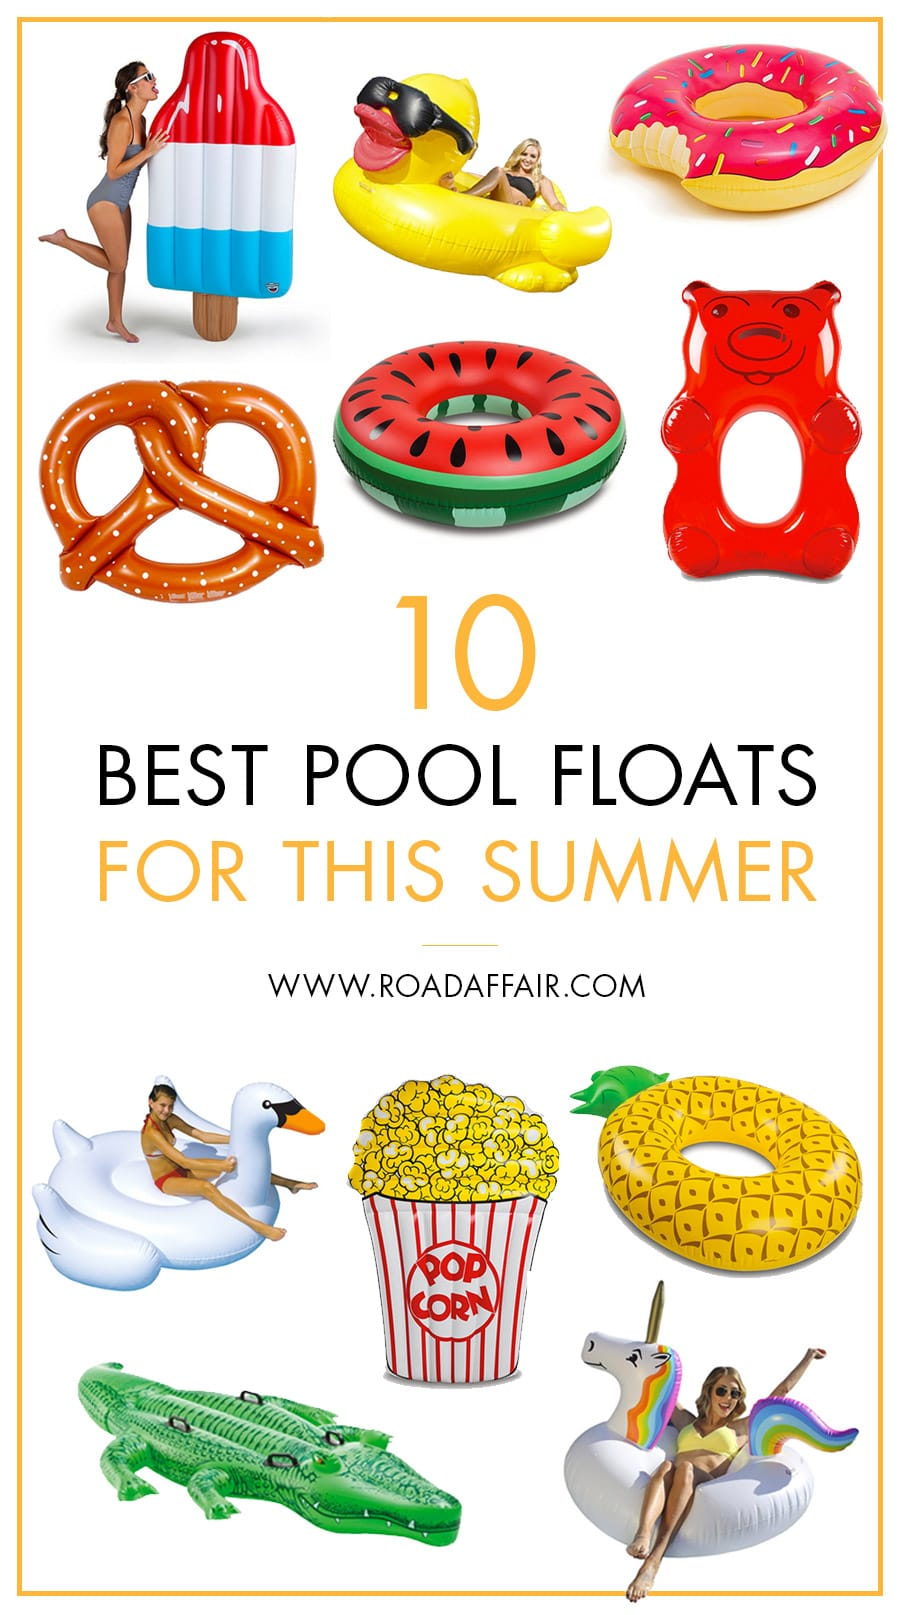 Best Pool Floats to Travel with this Summer